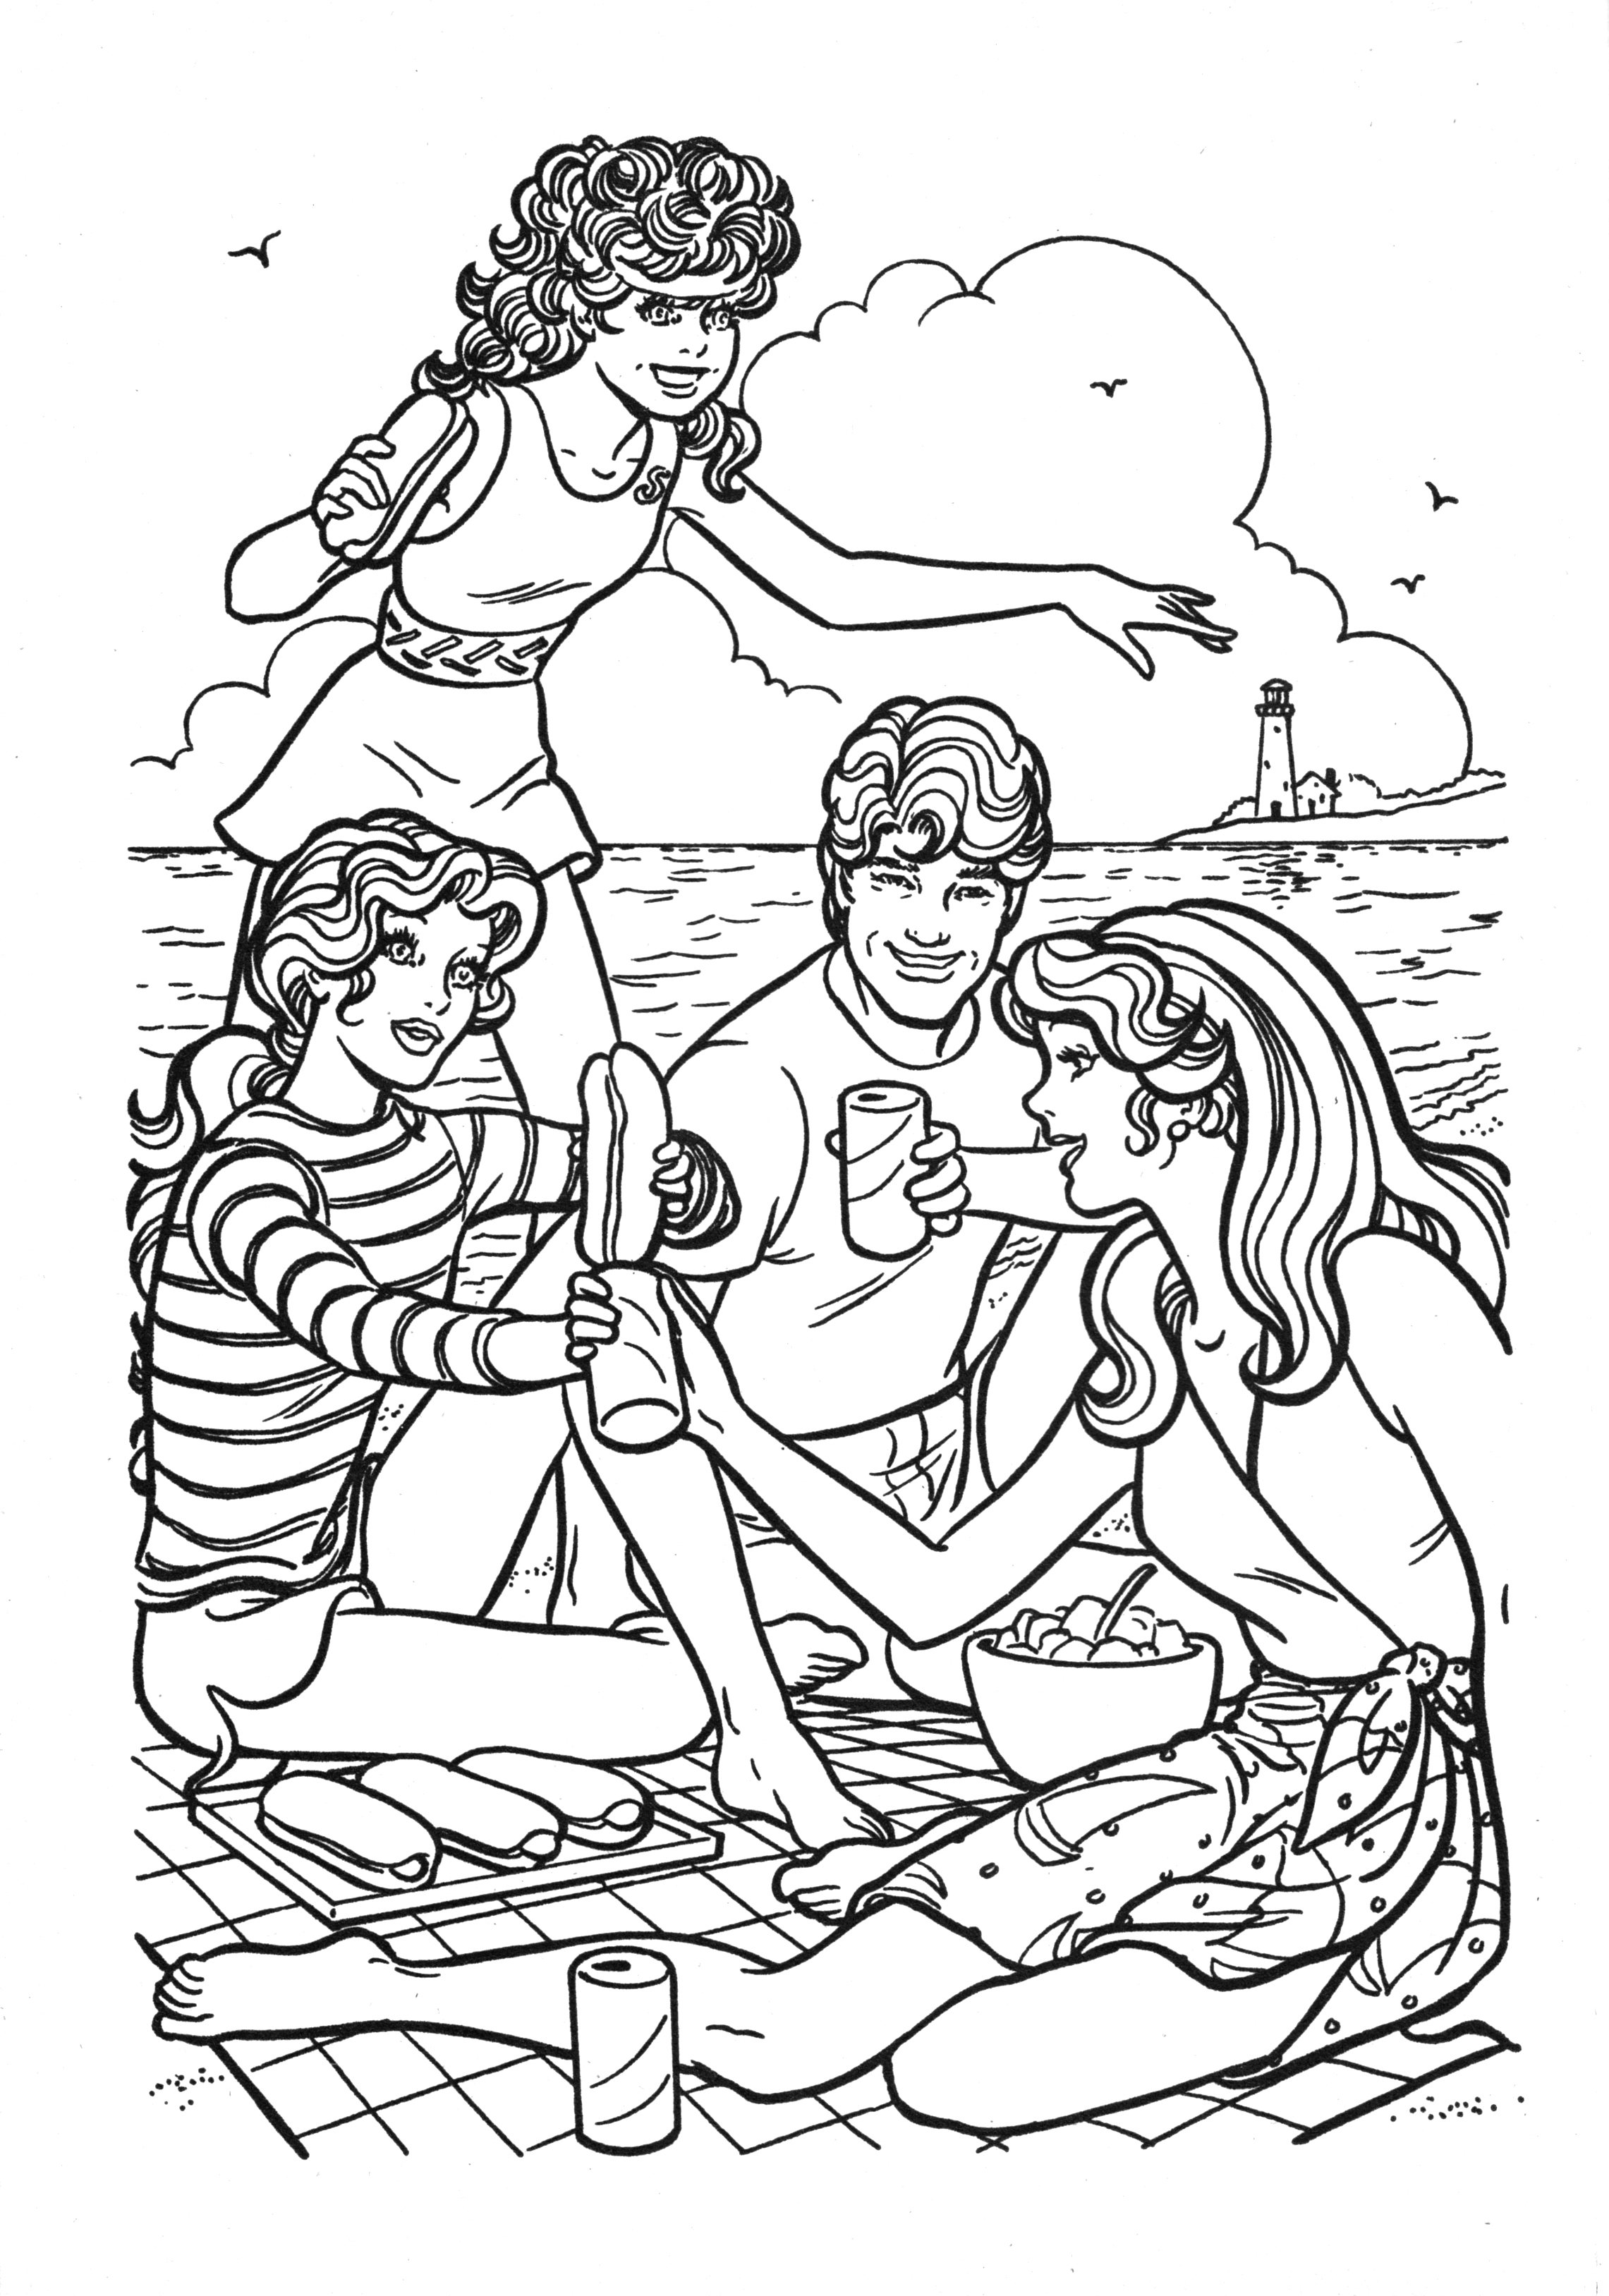 2281x3255 Barbie Coloring Pages Barbie Coloring Pages Kids Coloring Pages